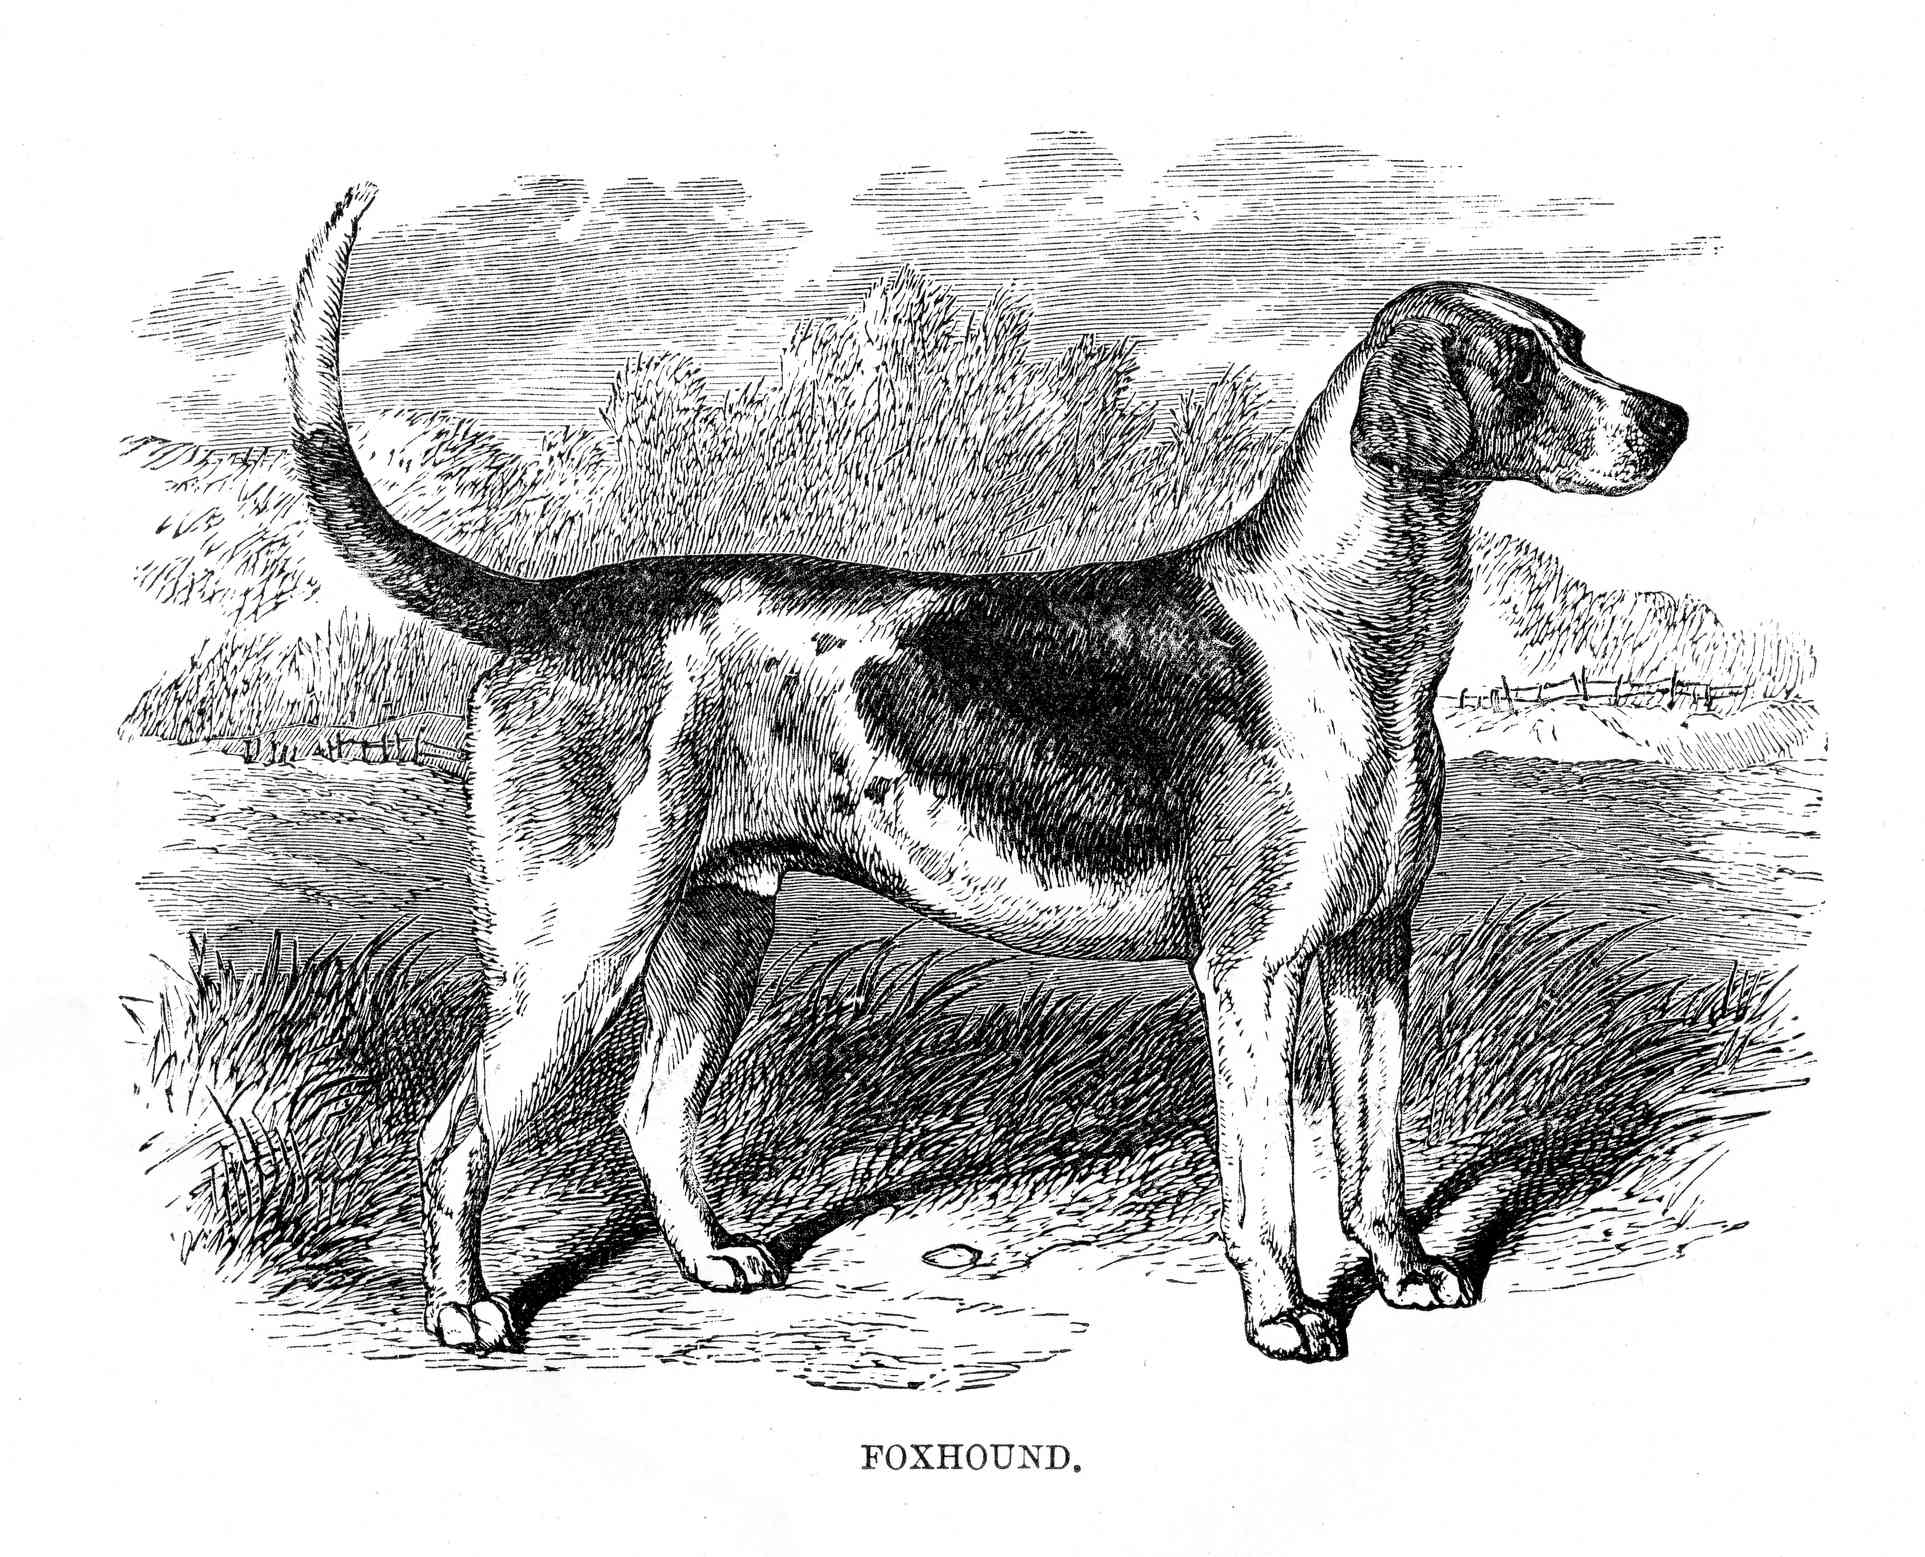 Illustration of American Foxhound in 1894, black and white foxhound